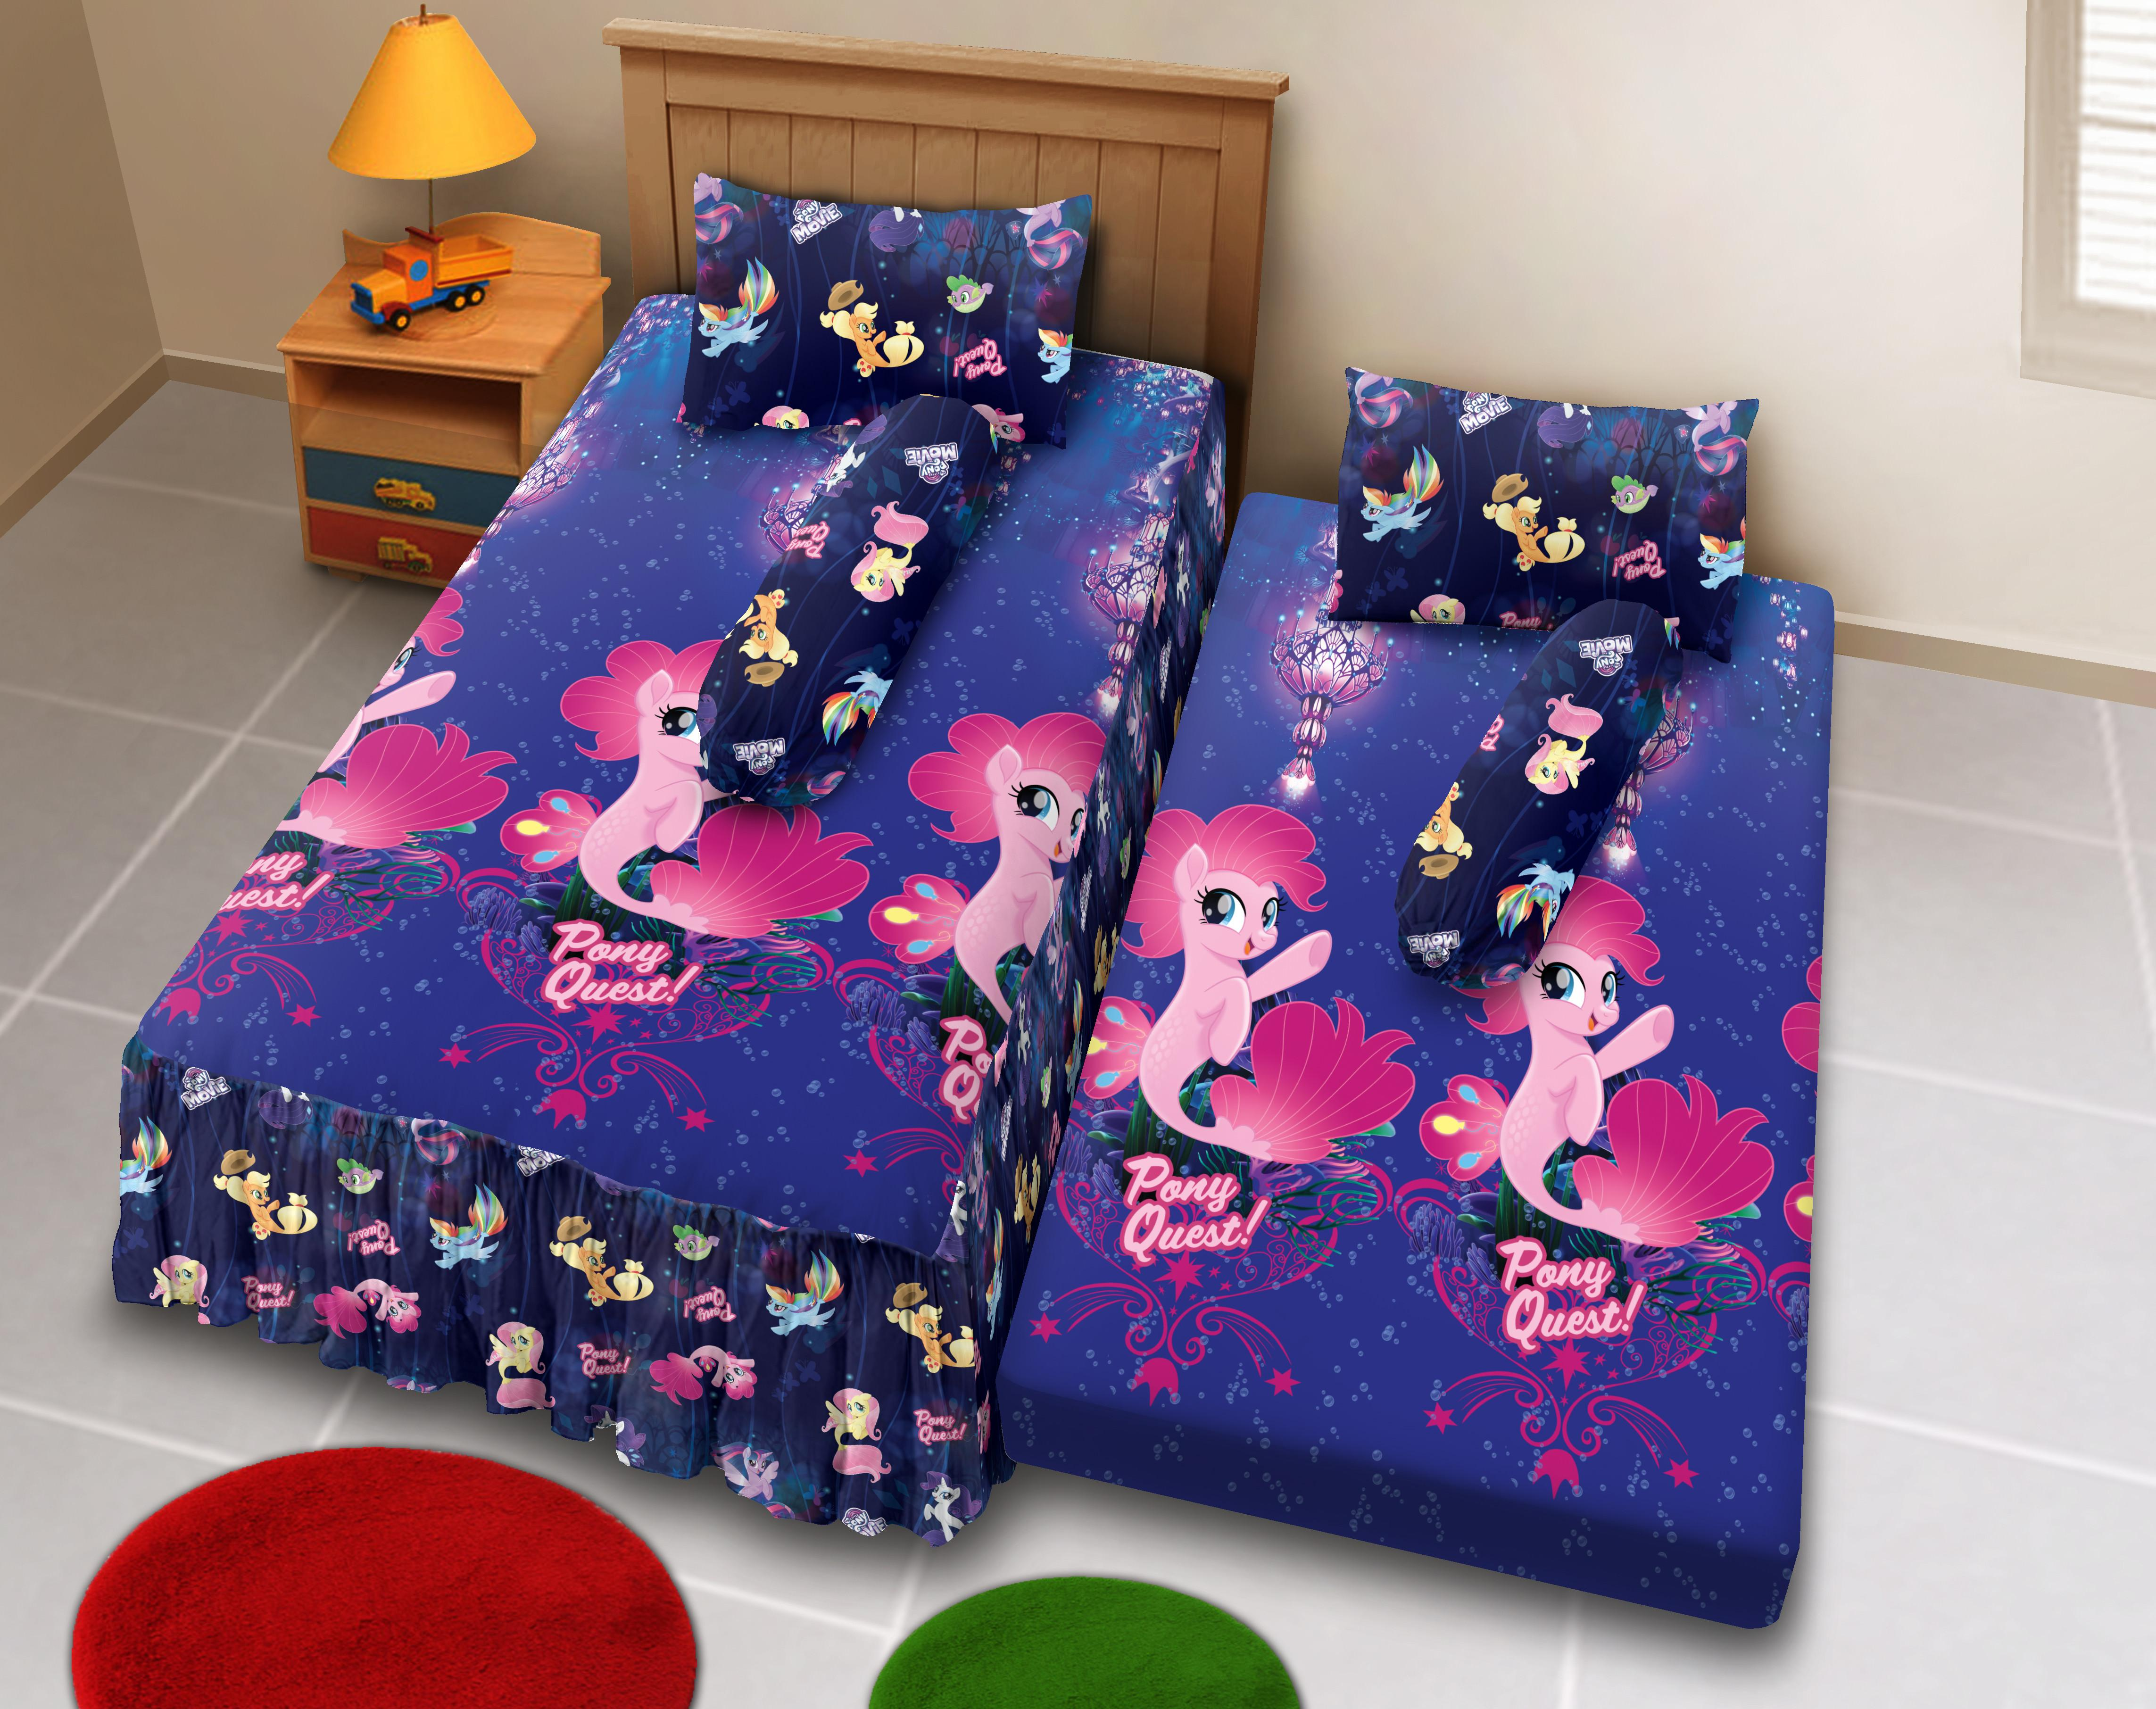 Kintakun D'luxe Sprei 2in1 - 120 x 200 (Single) - Little Pony The Movie